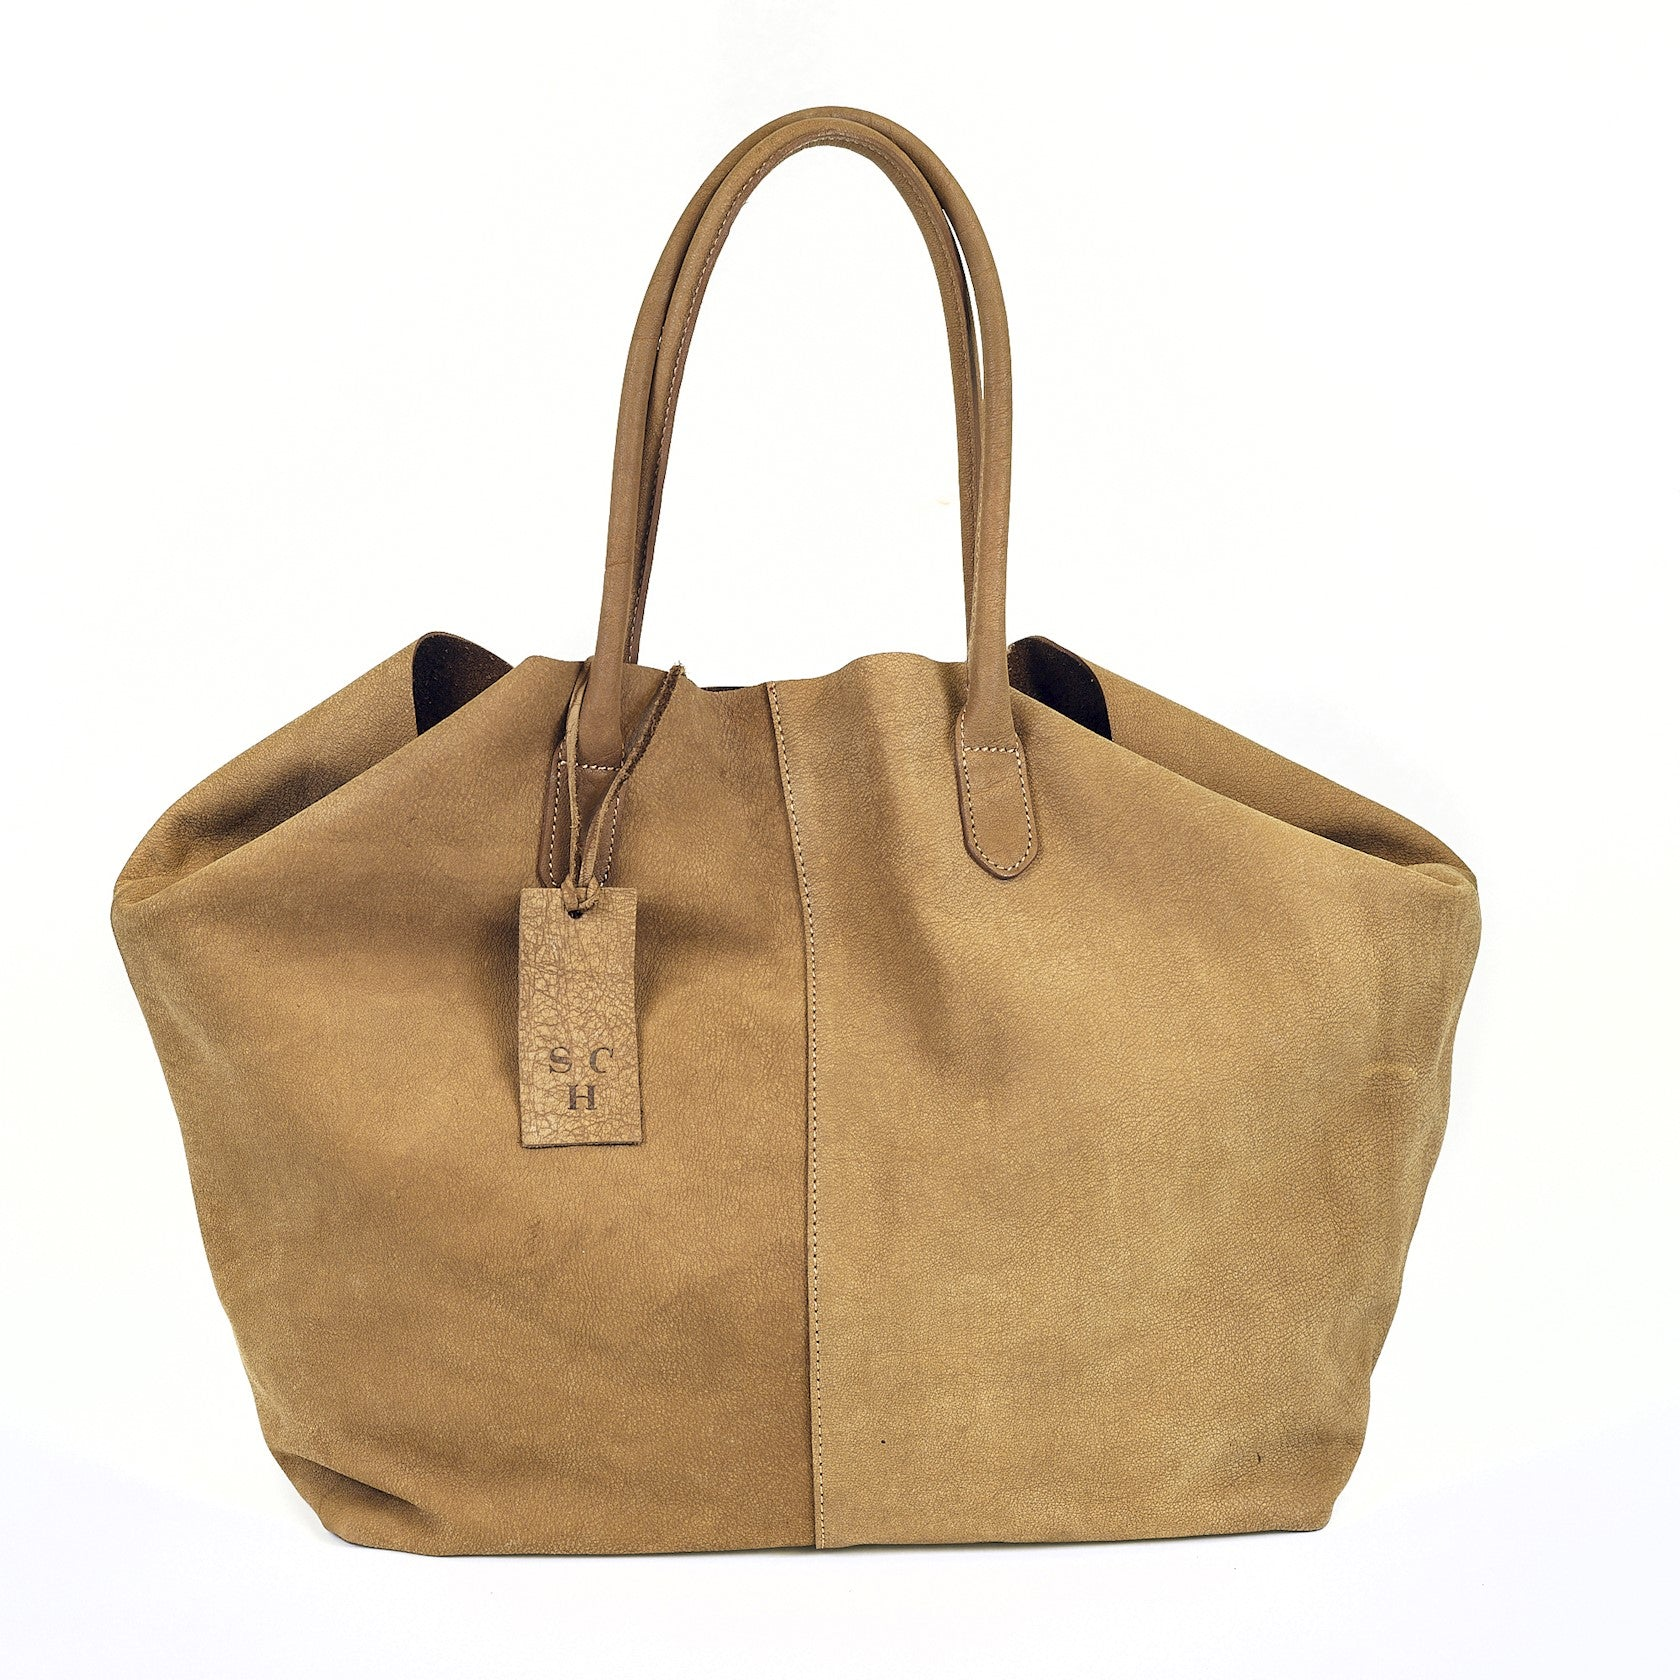 SHOPPING BAG 'ARENA' - SCAPA HOME OFFICIAL